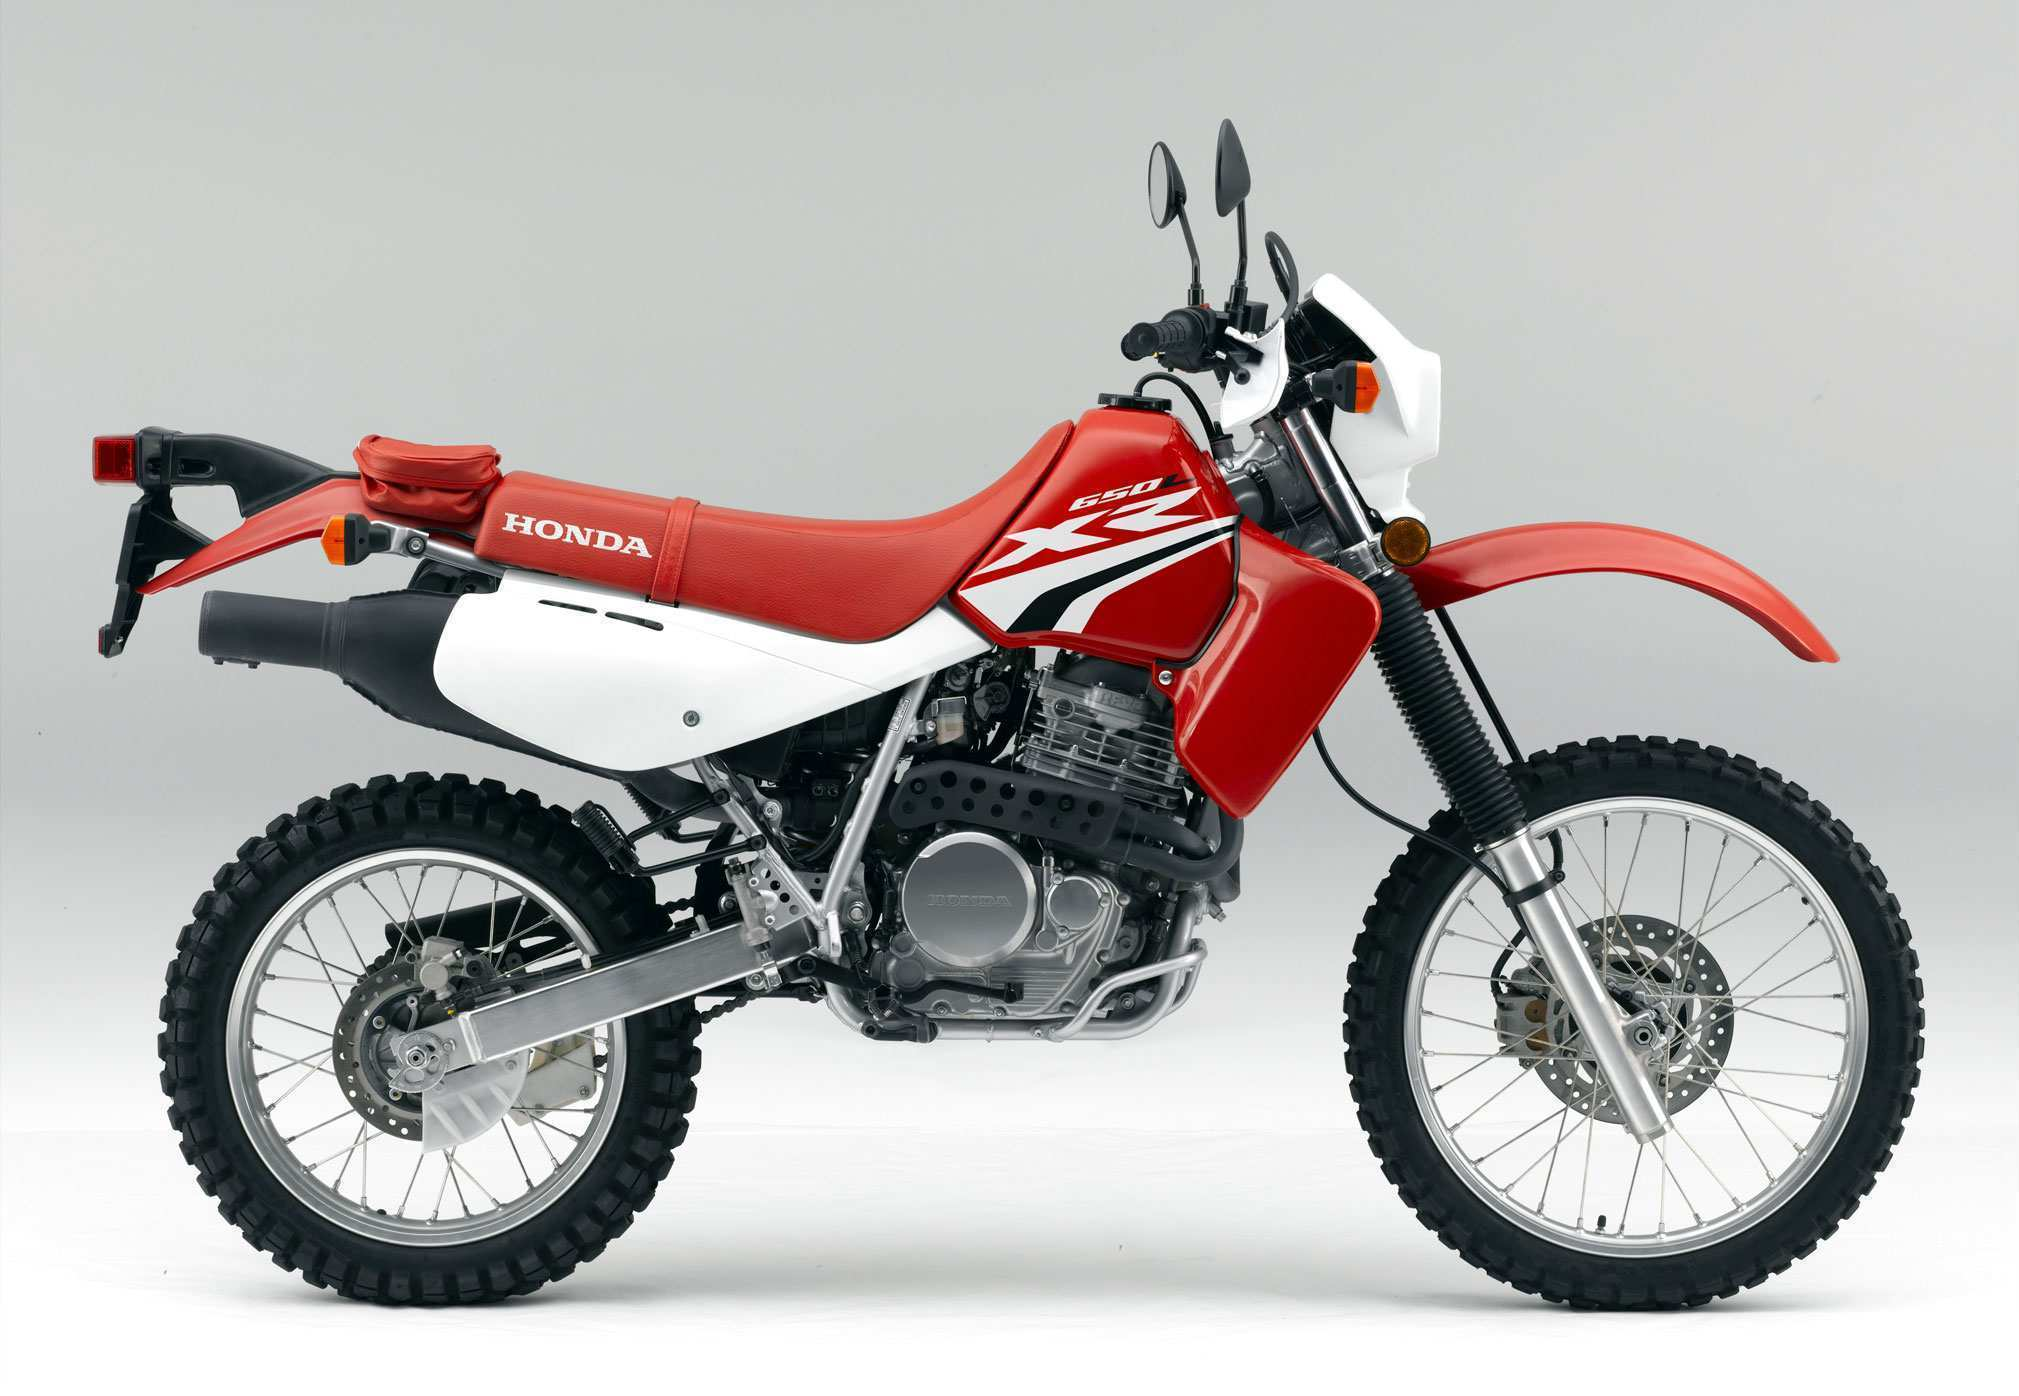 95 New 2020 Honda Xr650L Redesign and Concept with 2020 Honda Xr650L